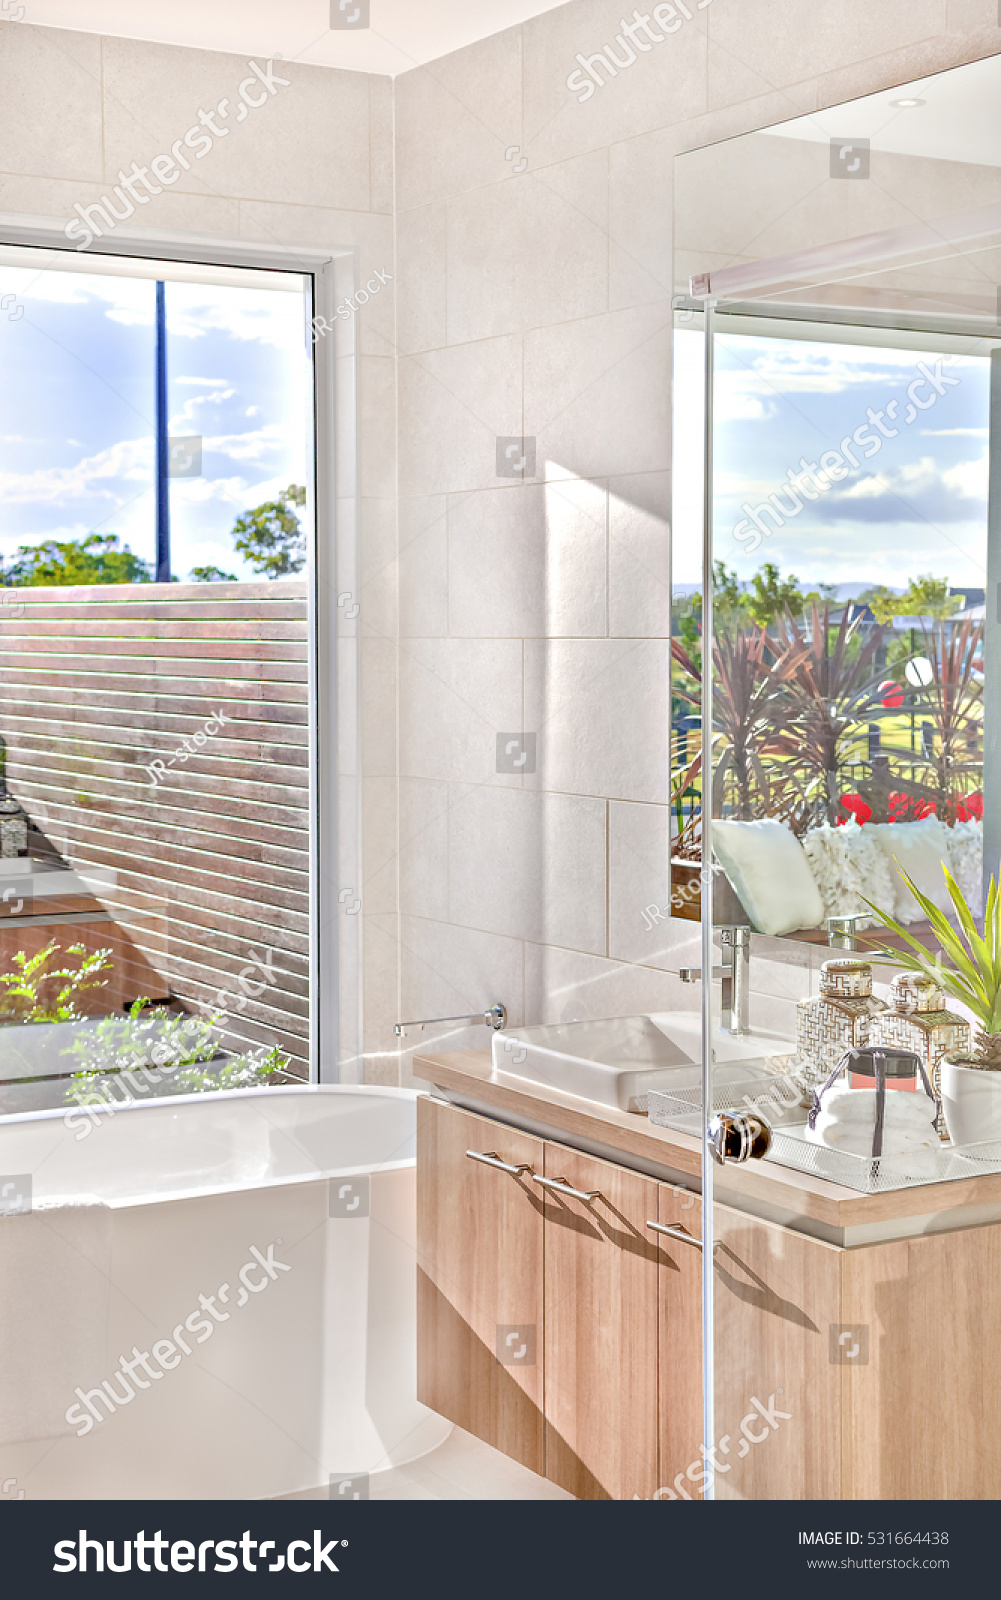 Bathroom Mirror Tub Beside Shower Window Stock Photo (Download Now ...